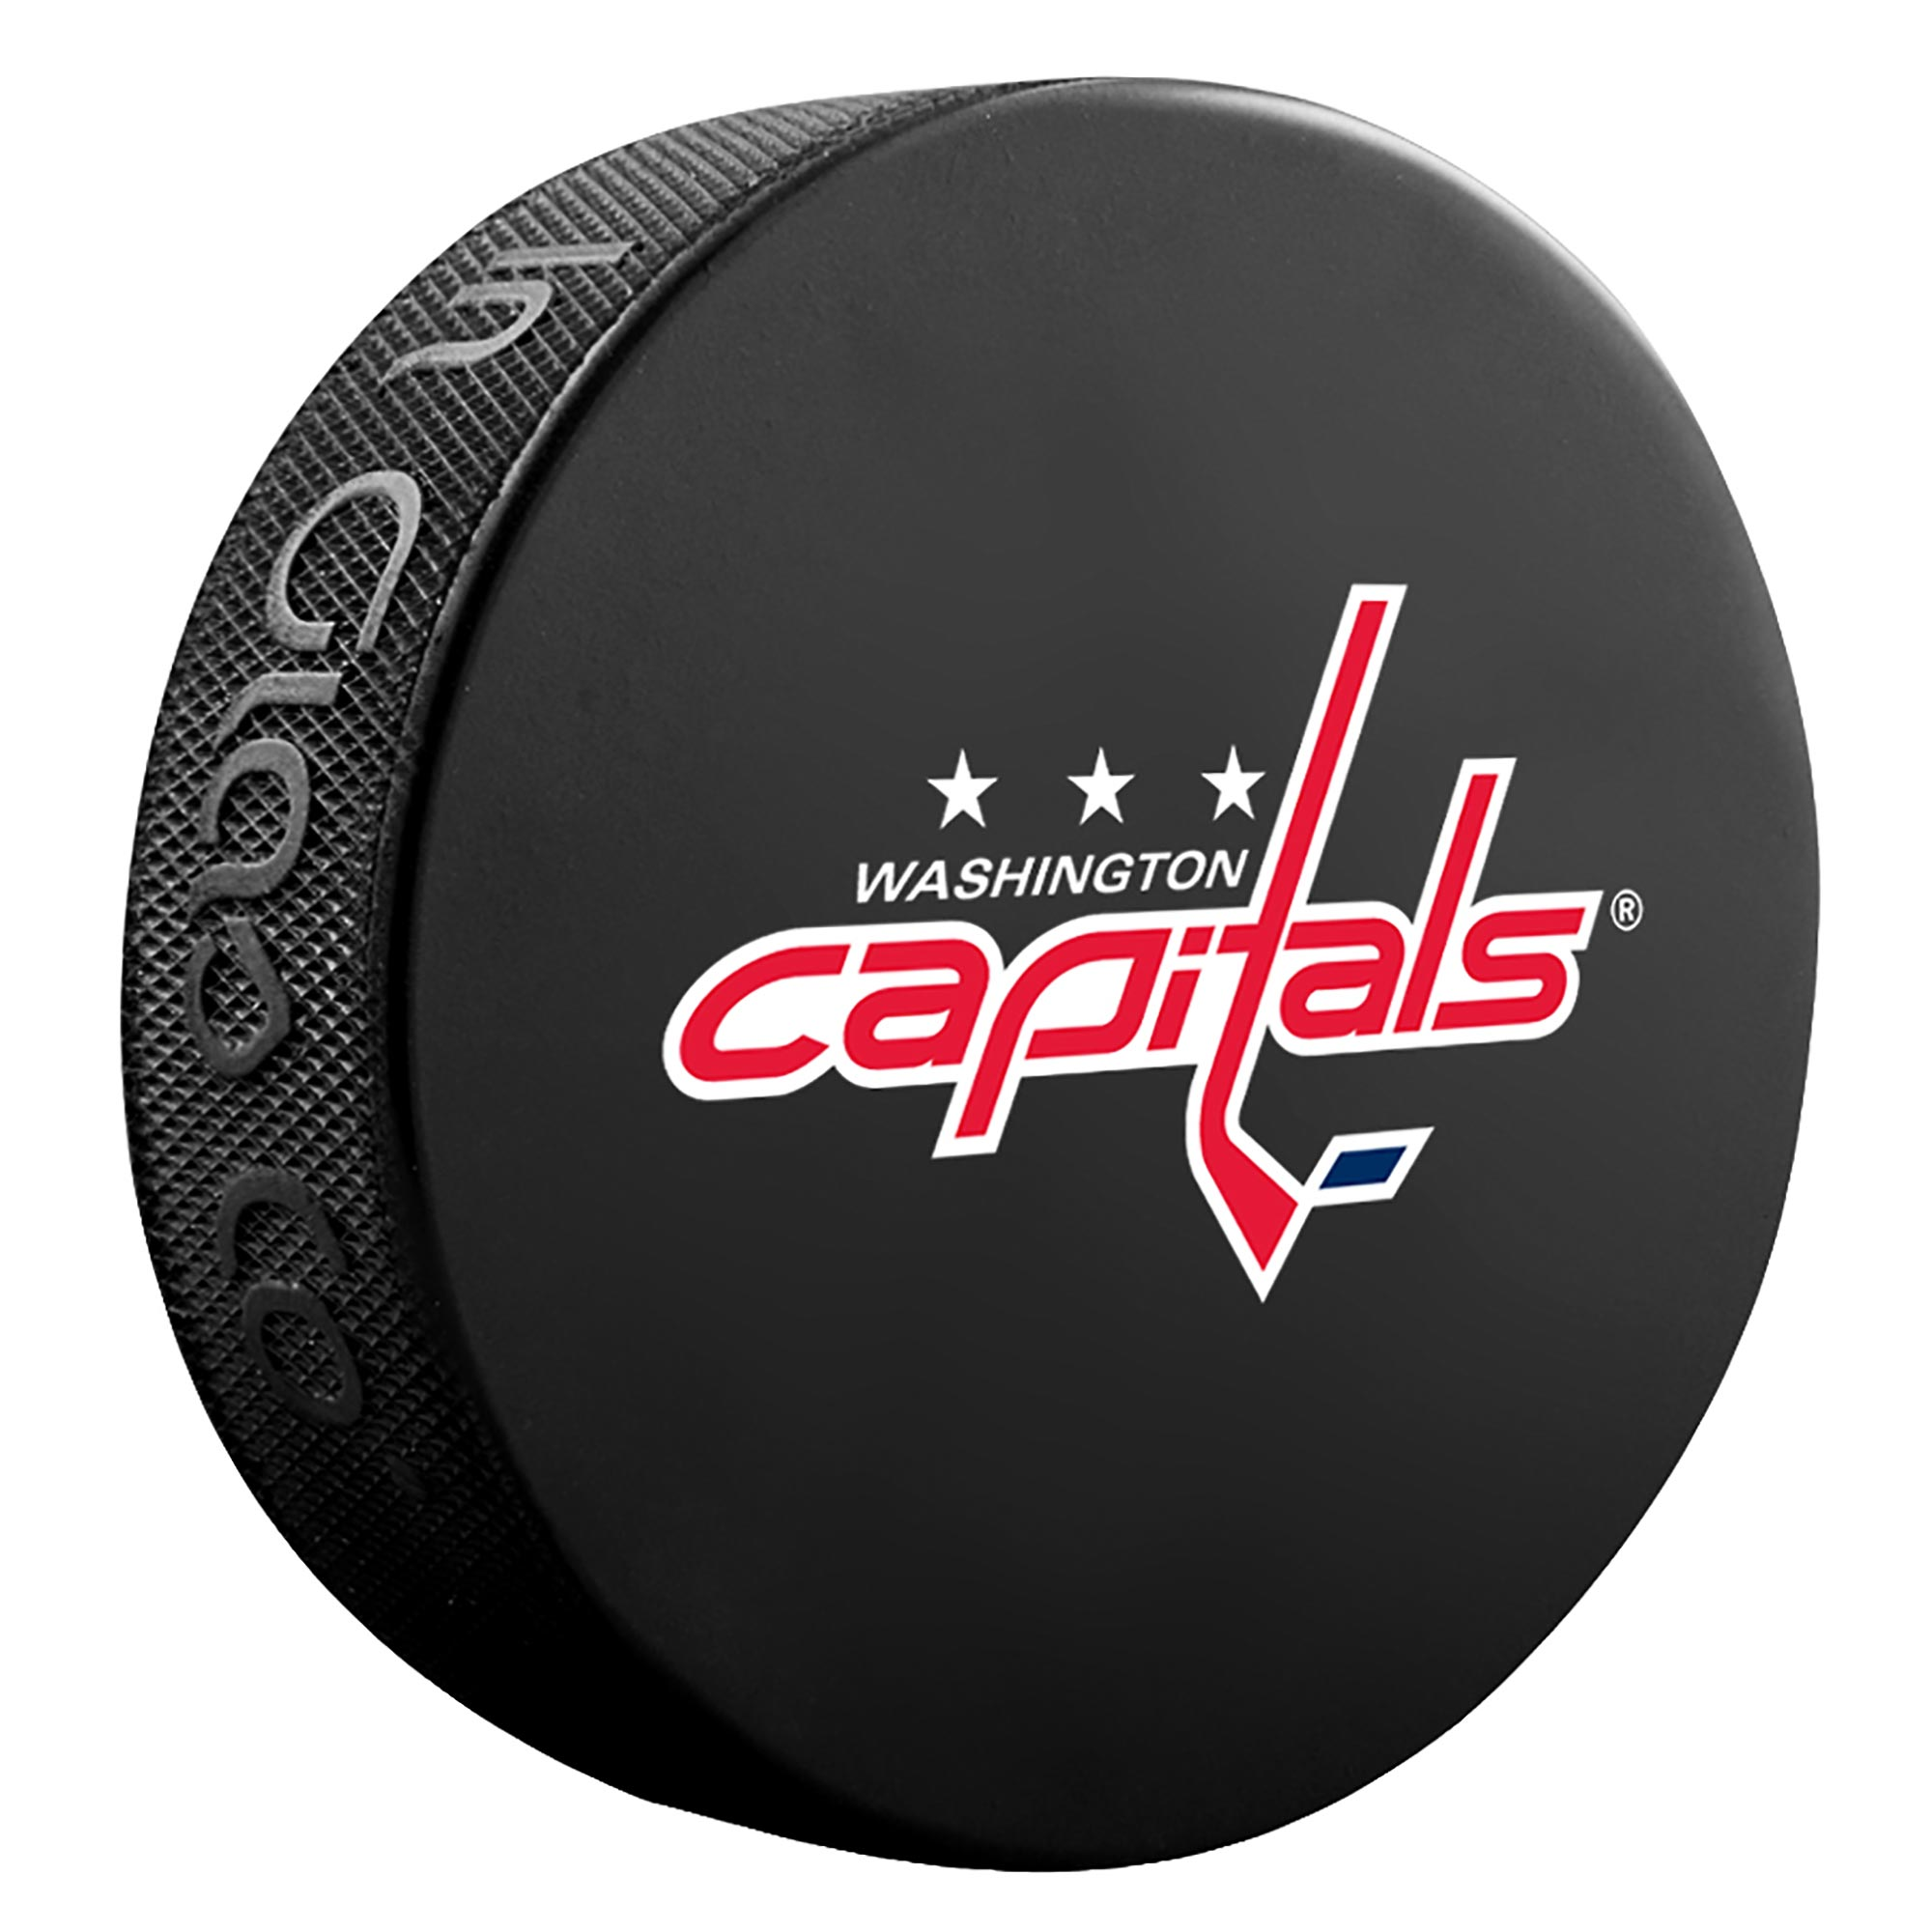 Washington Capitals Team Puck